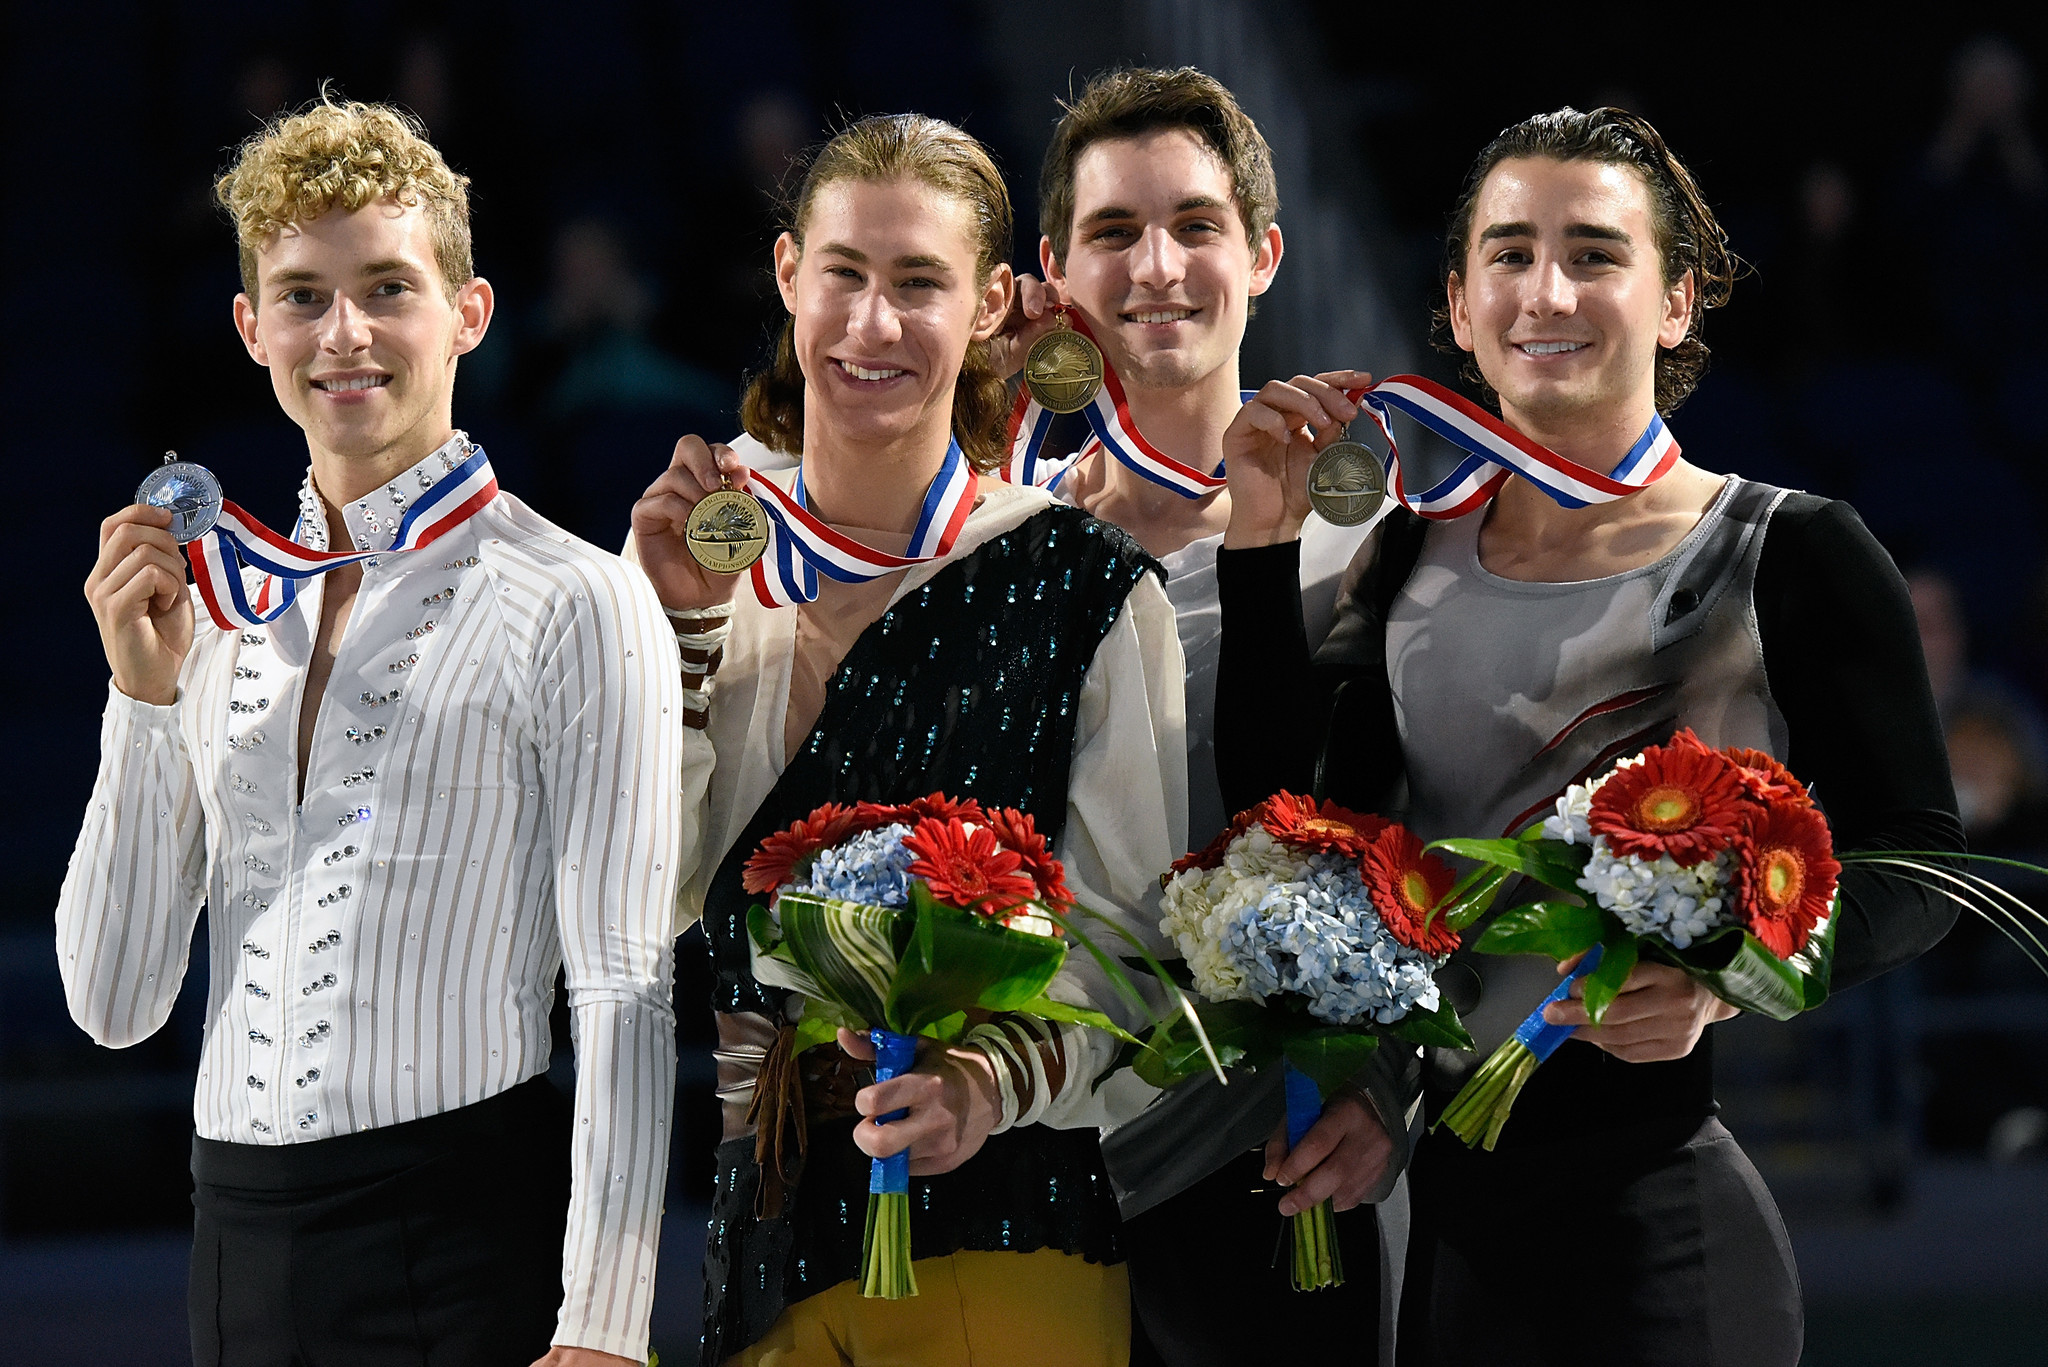 jason brown wins 1st u s title but can he make the next leap jason brown wins 1st u s title but can he make the next leap chicago tribune